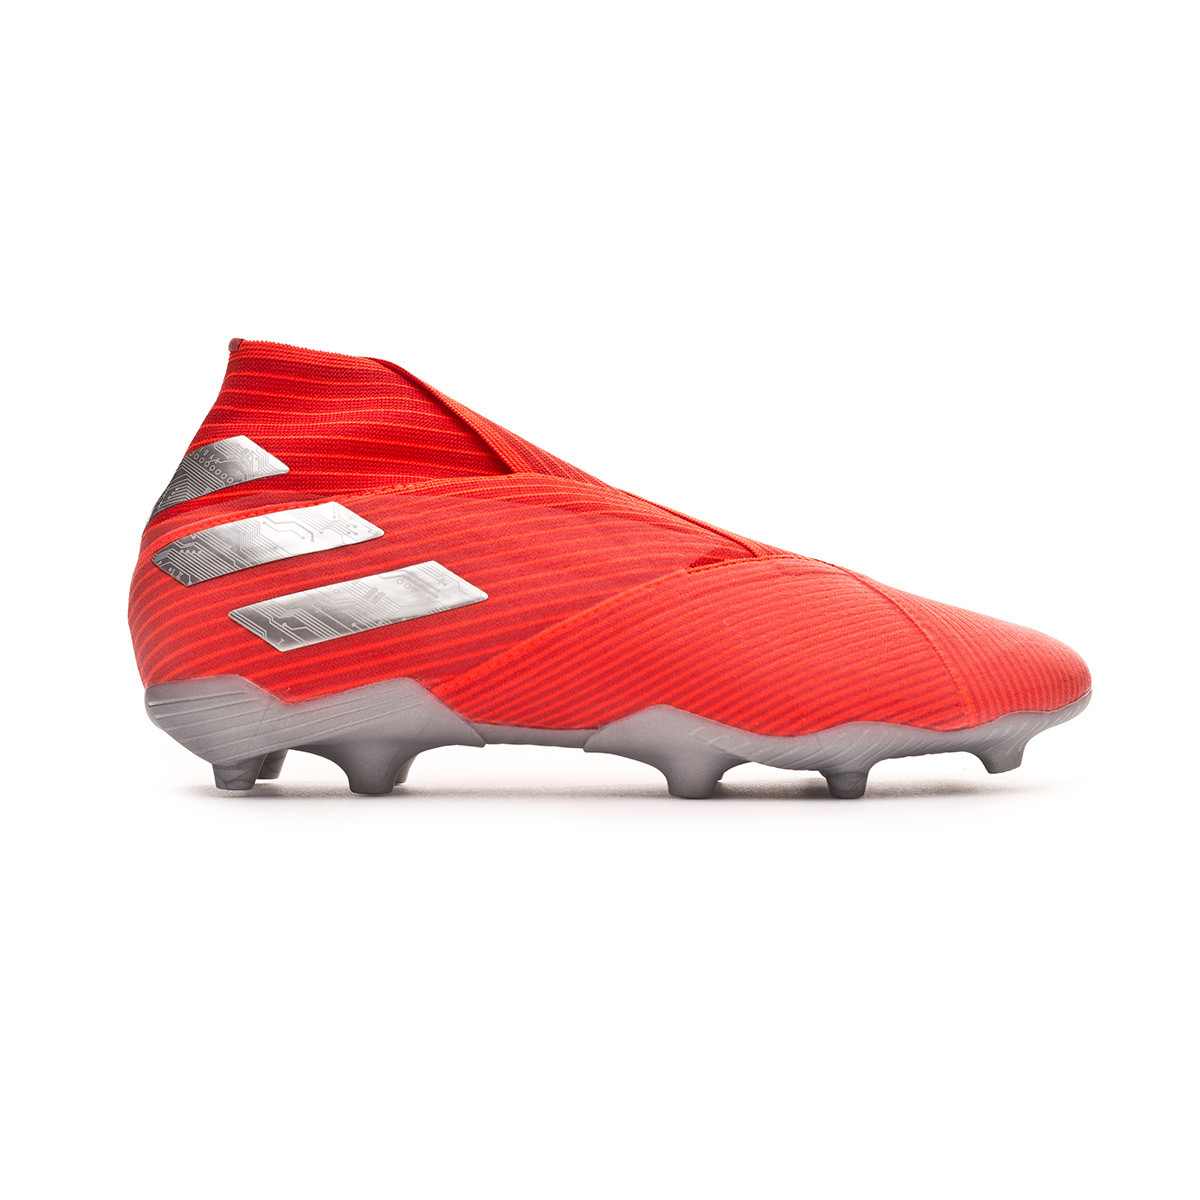 a4caf15a0ca Football Boots adidas Kids Nemeziz 19+ FG Active red-Silver metallic-Solar  red - Football store Fútbol Emotion